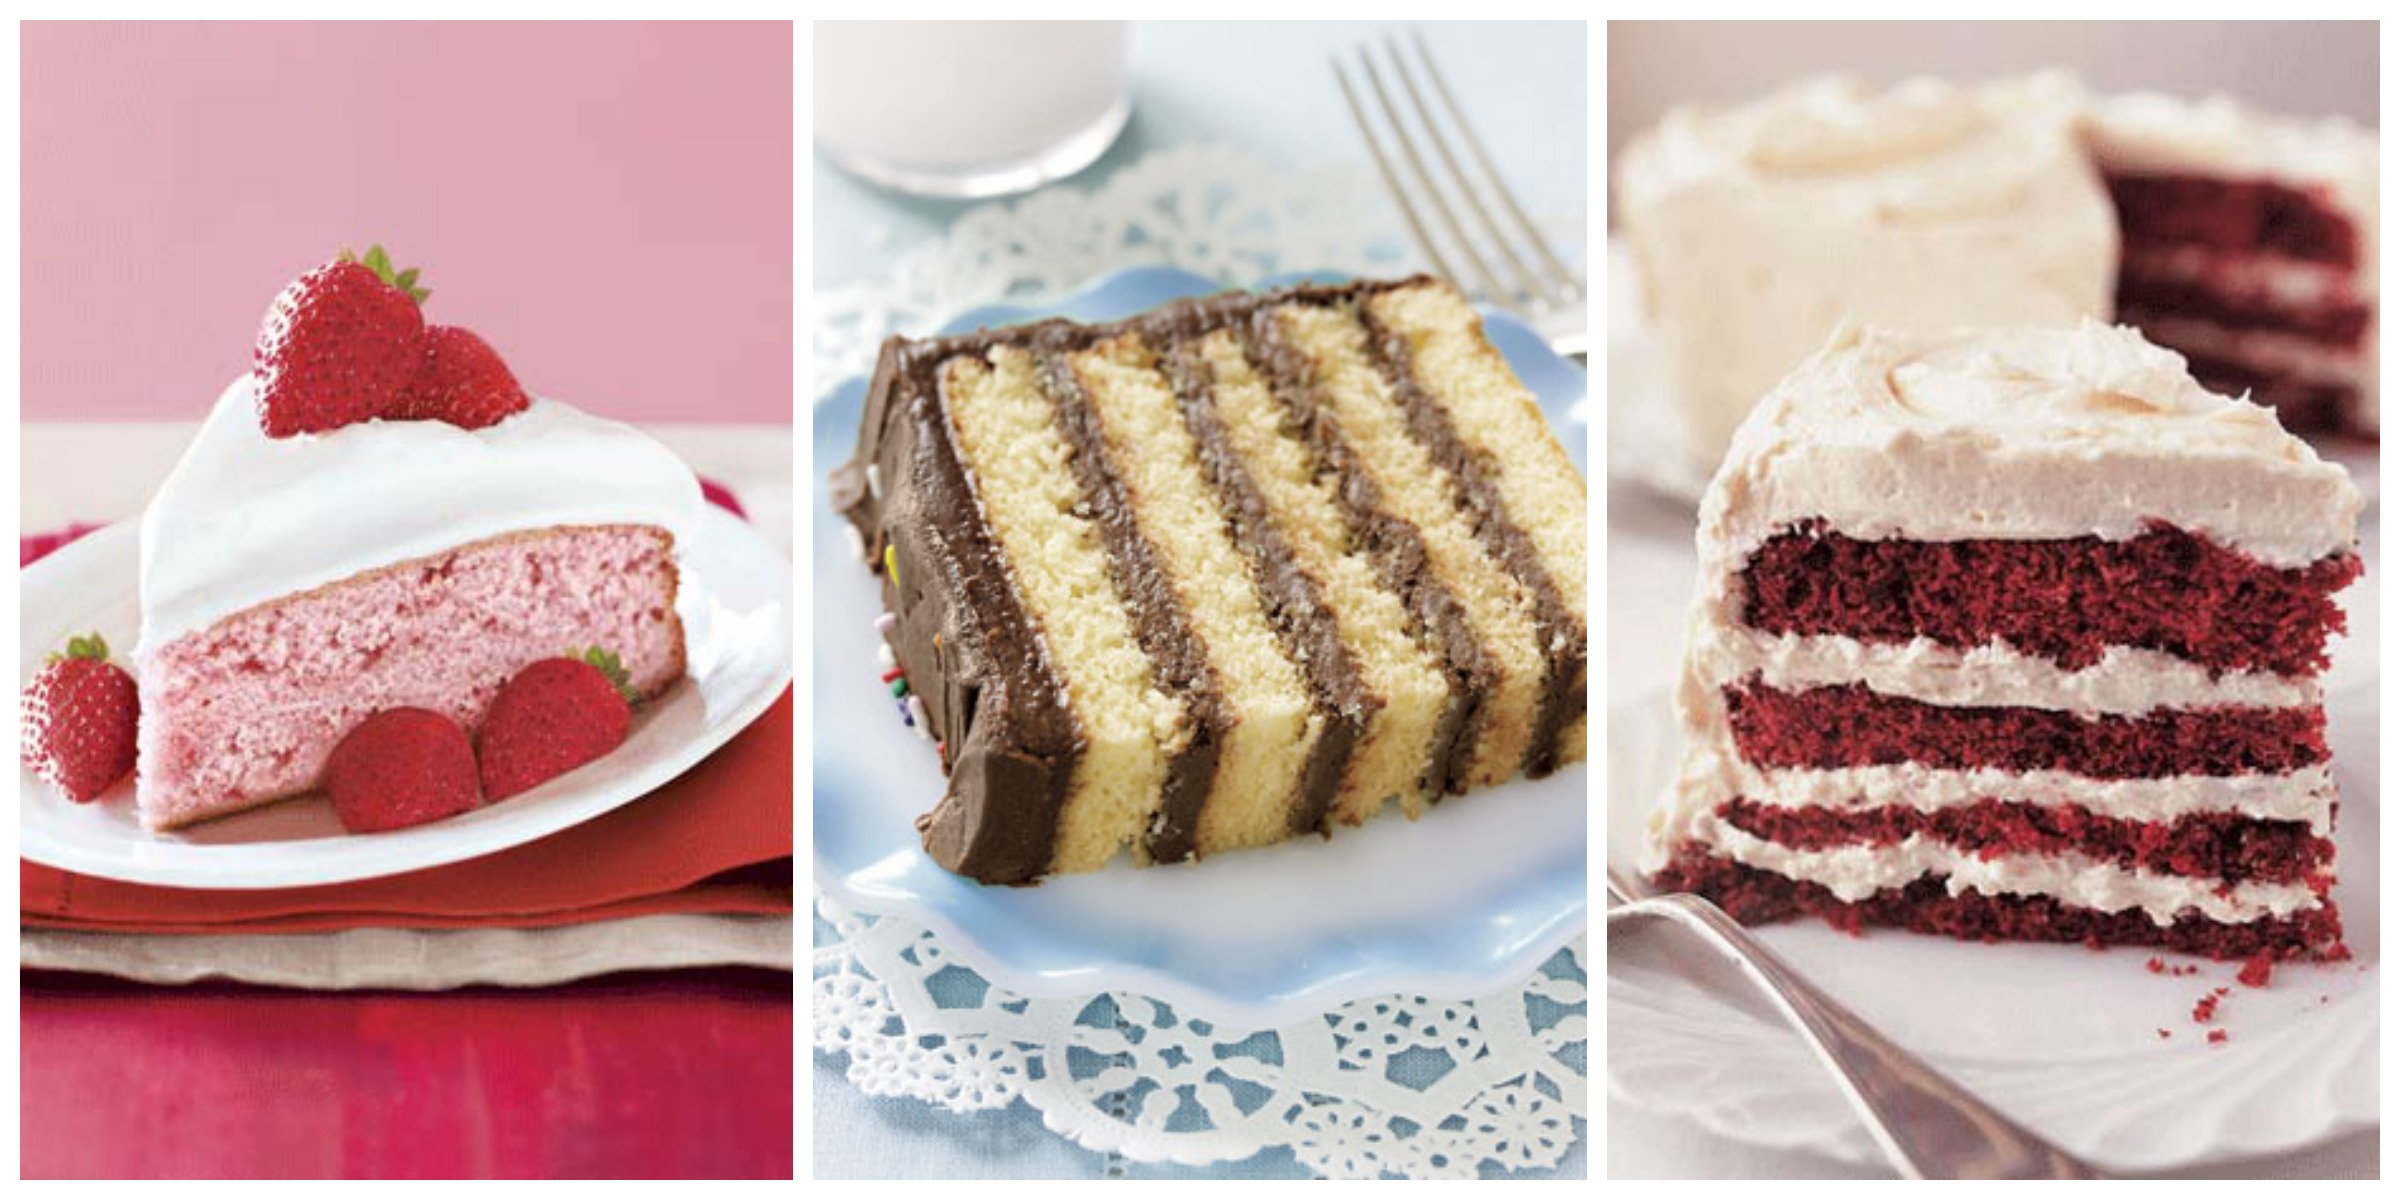 65 Best Homemade Cake Recipes - How to Make an Easy Cake